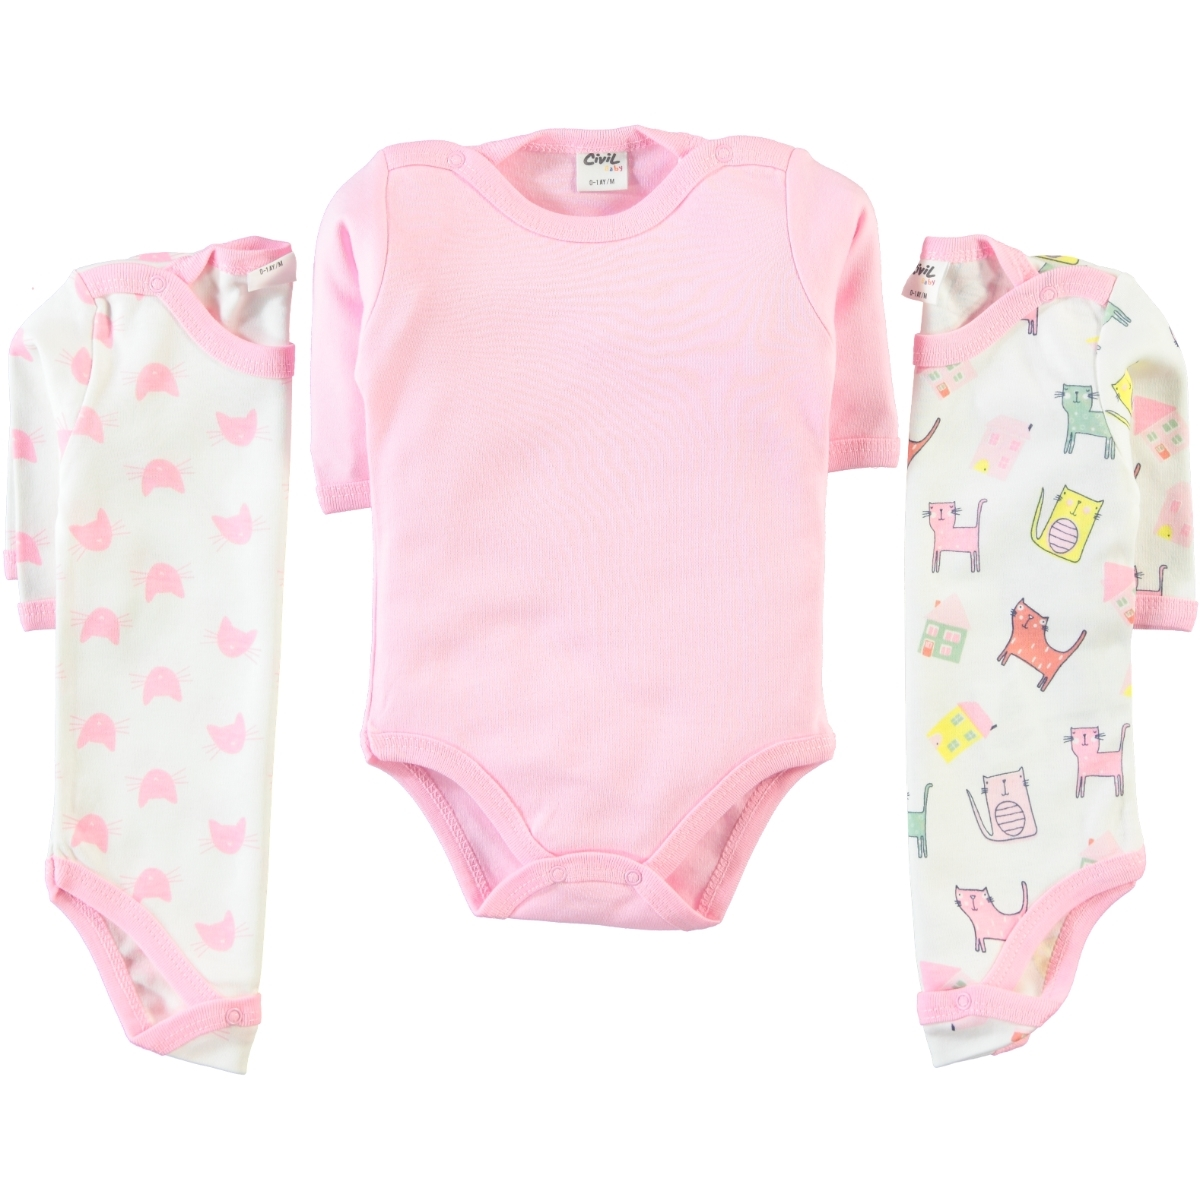 Civil Baby Baby girl 3-way 0-18 Months Pink Bodysuit with snaps